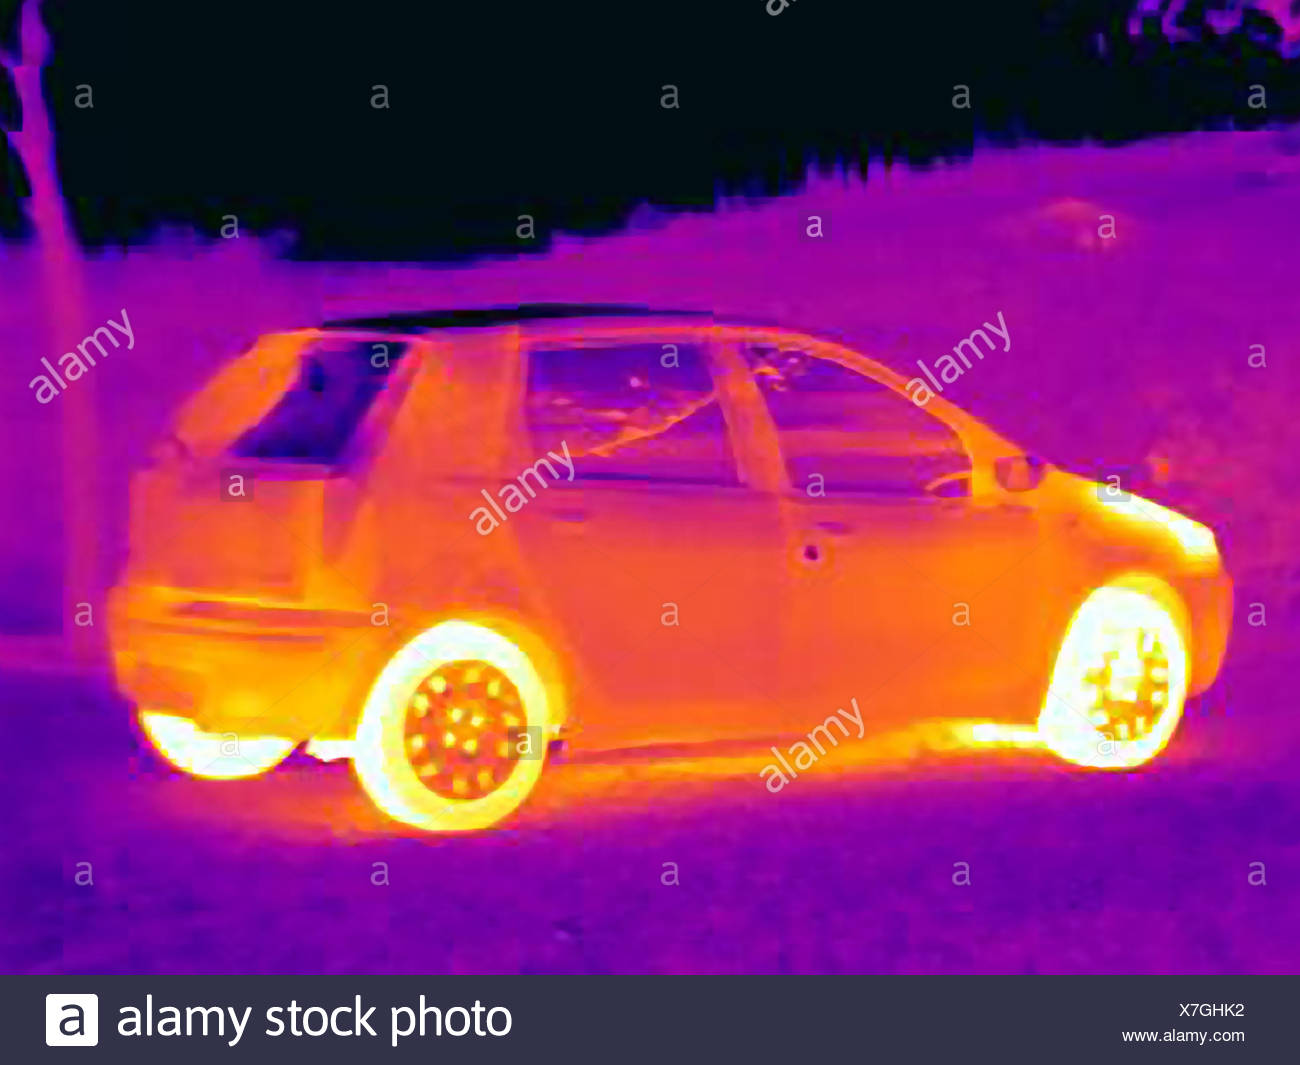 Thermal image of car - Stock Image